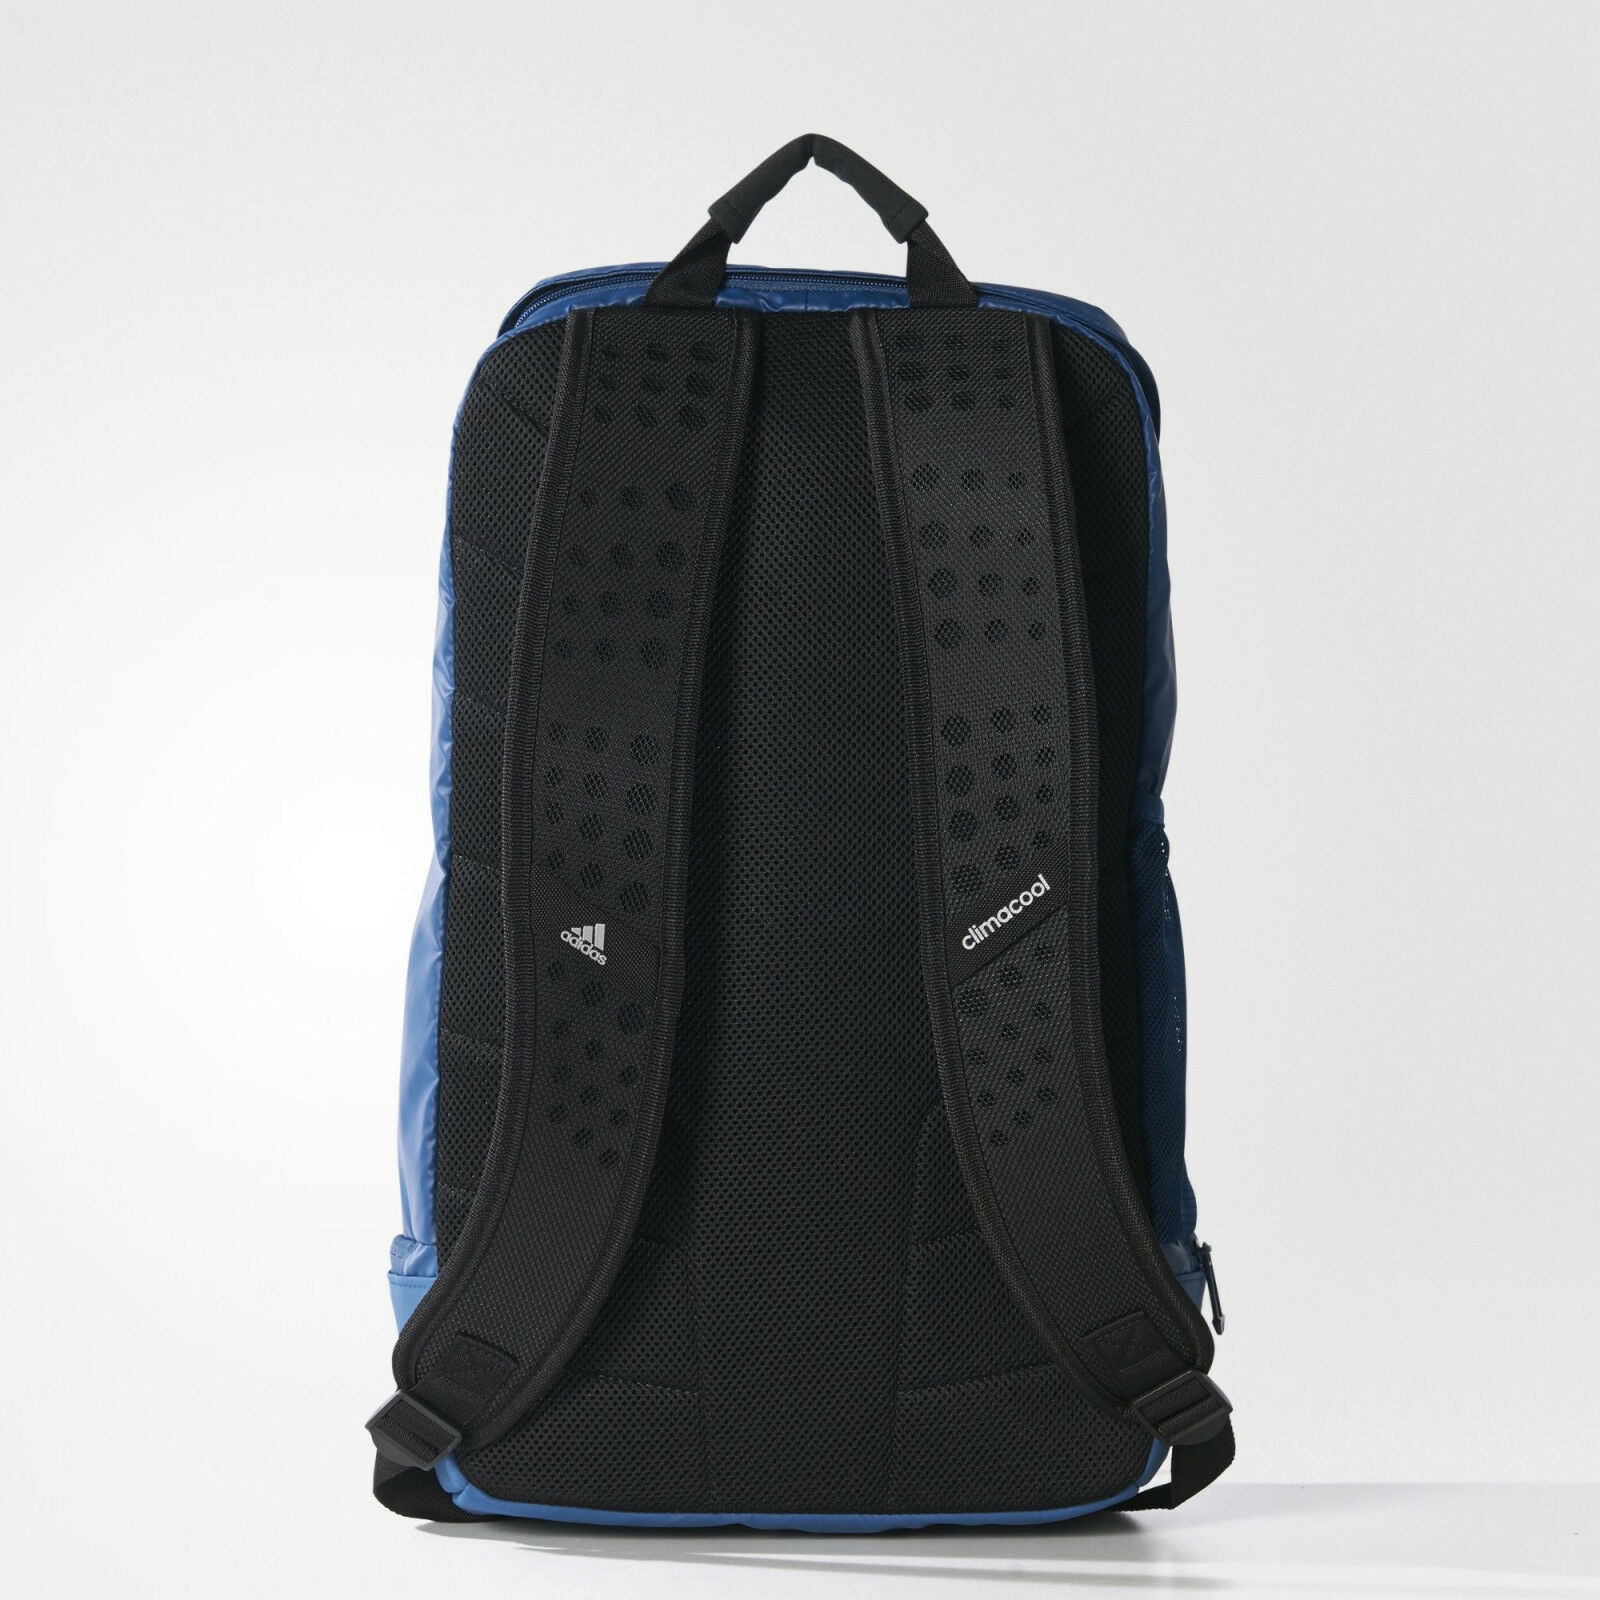 699e39e231a7 adidas Training Climacool Backpack - Ay5421 - for sale online